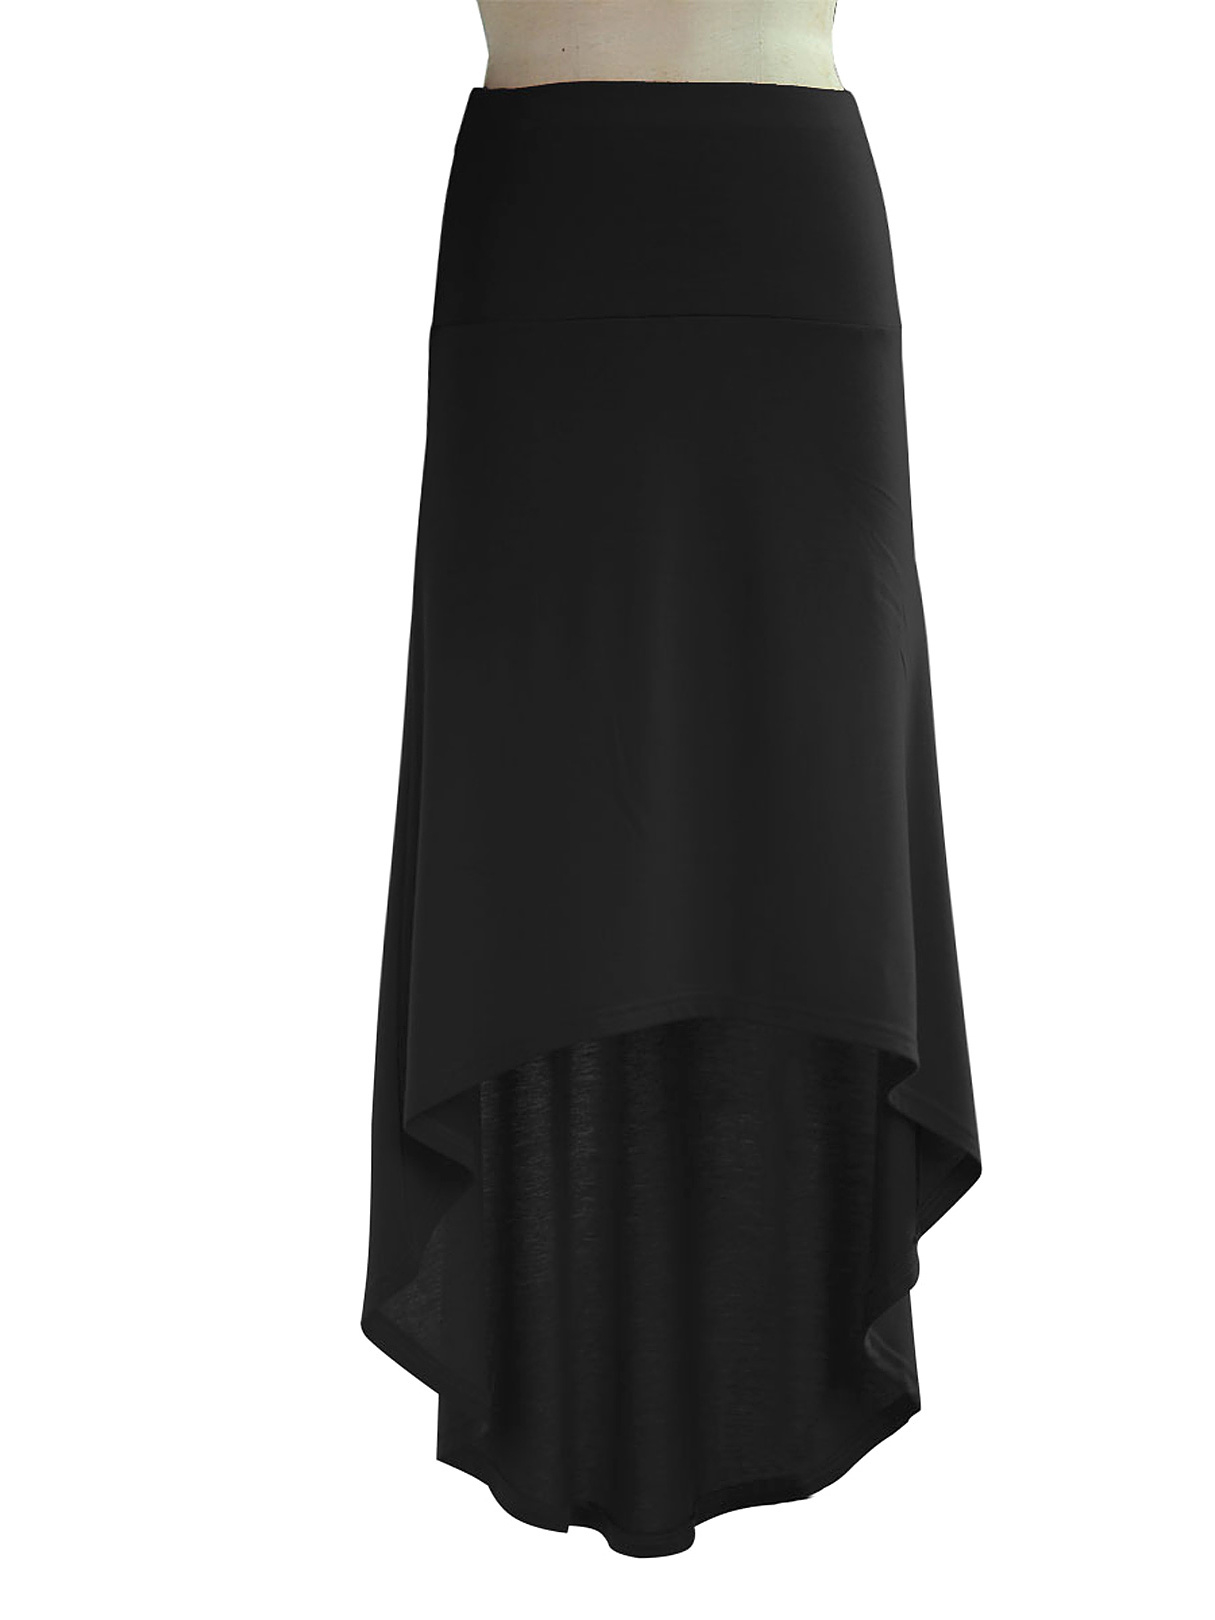 Black High-low Hem Pencil Skirt